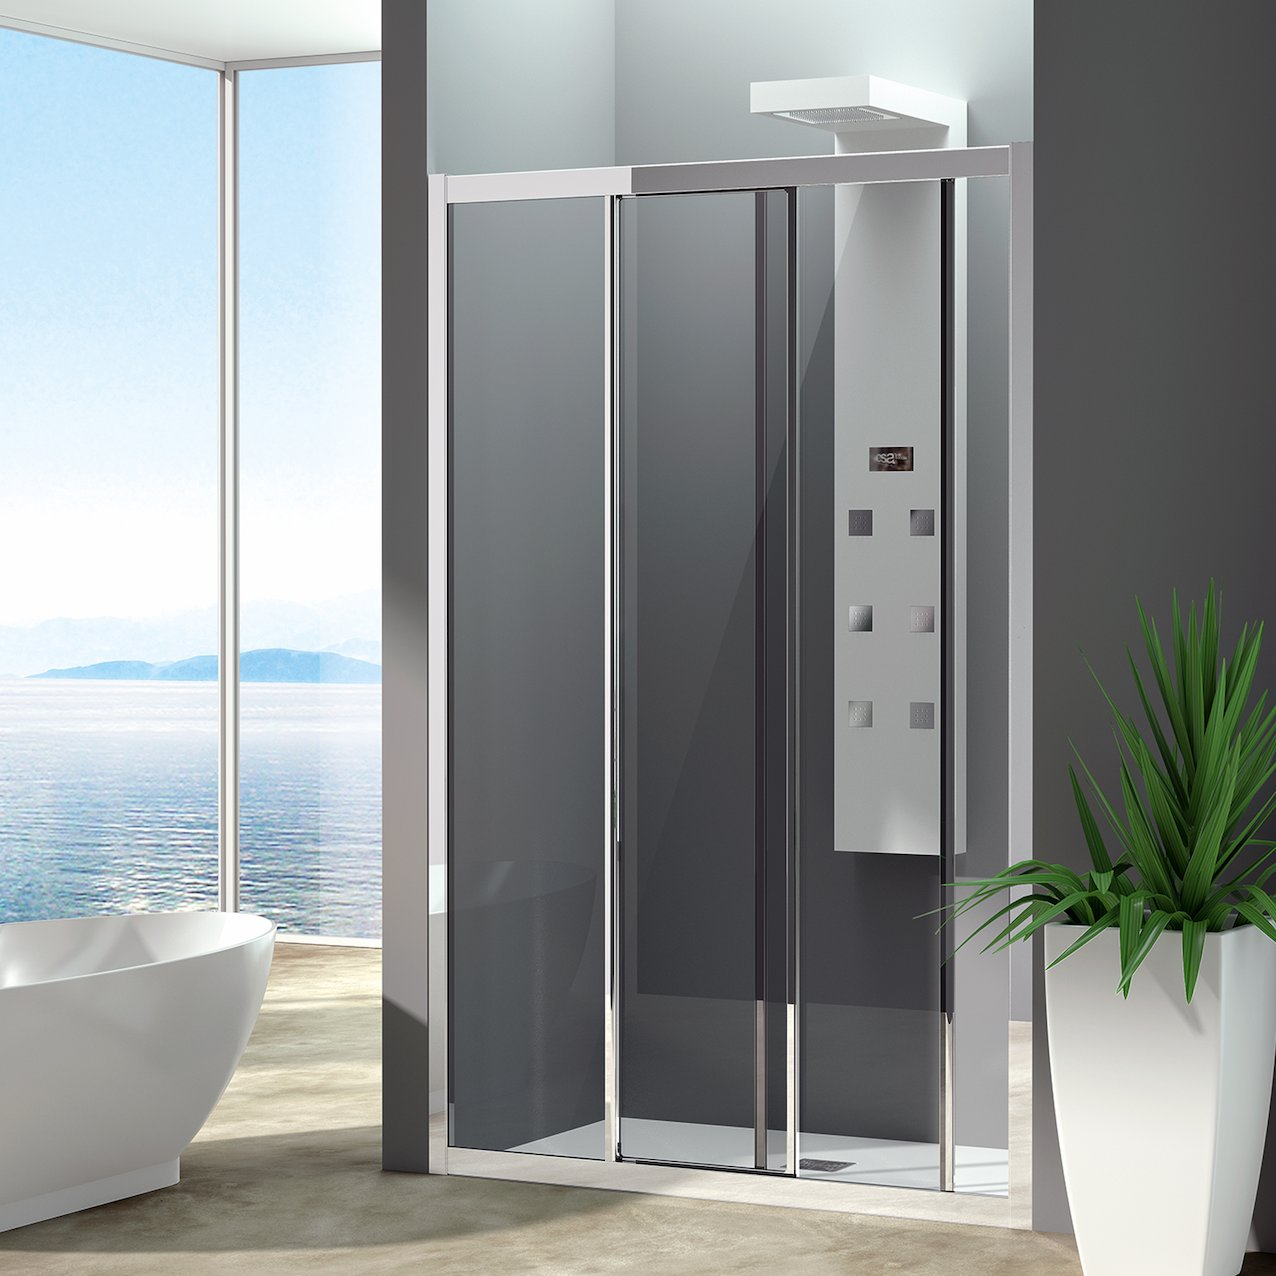 Sliding Shower Enclosure Kawai